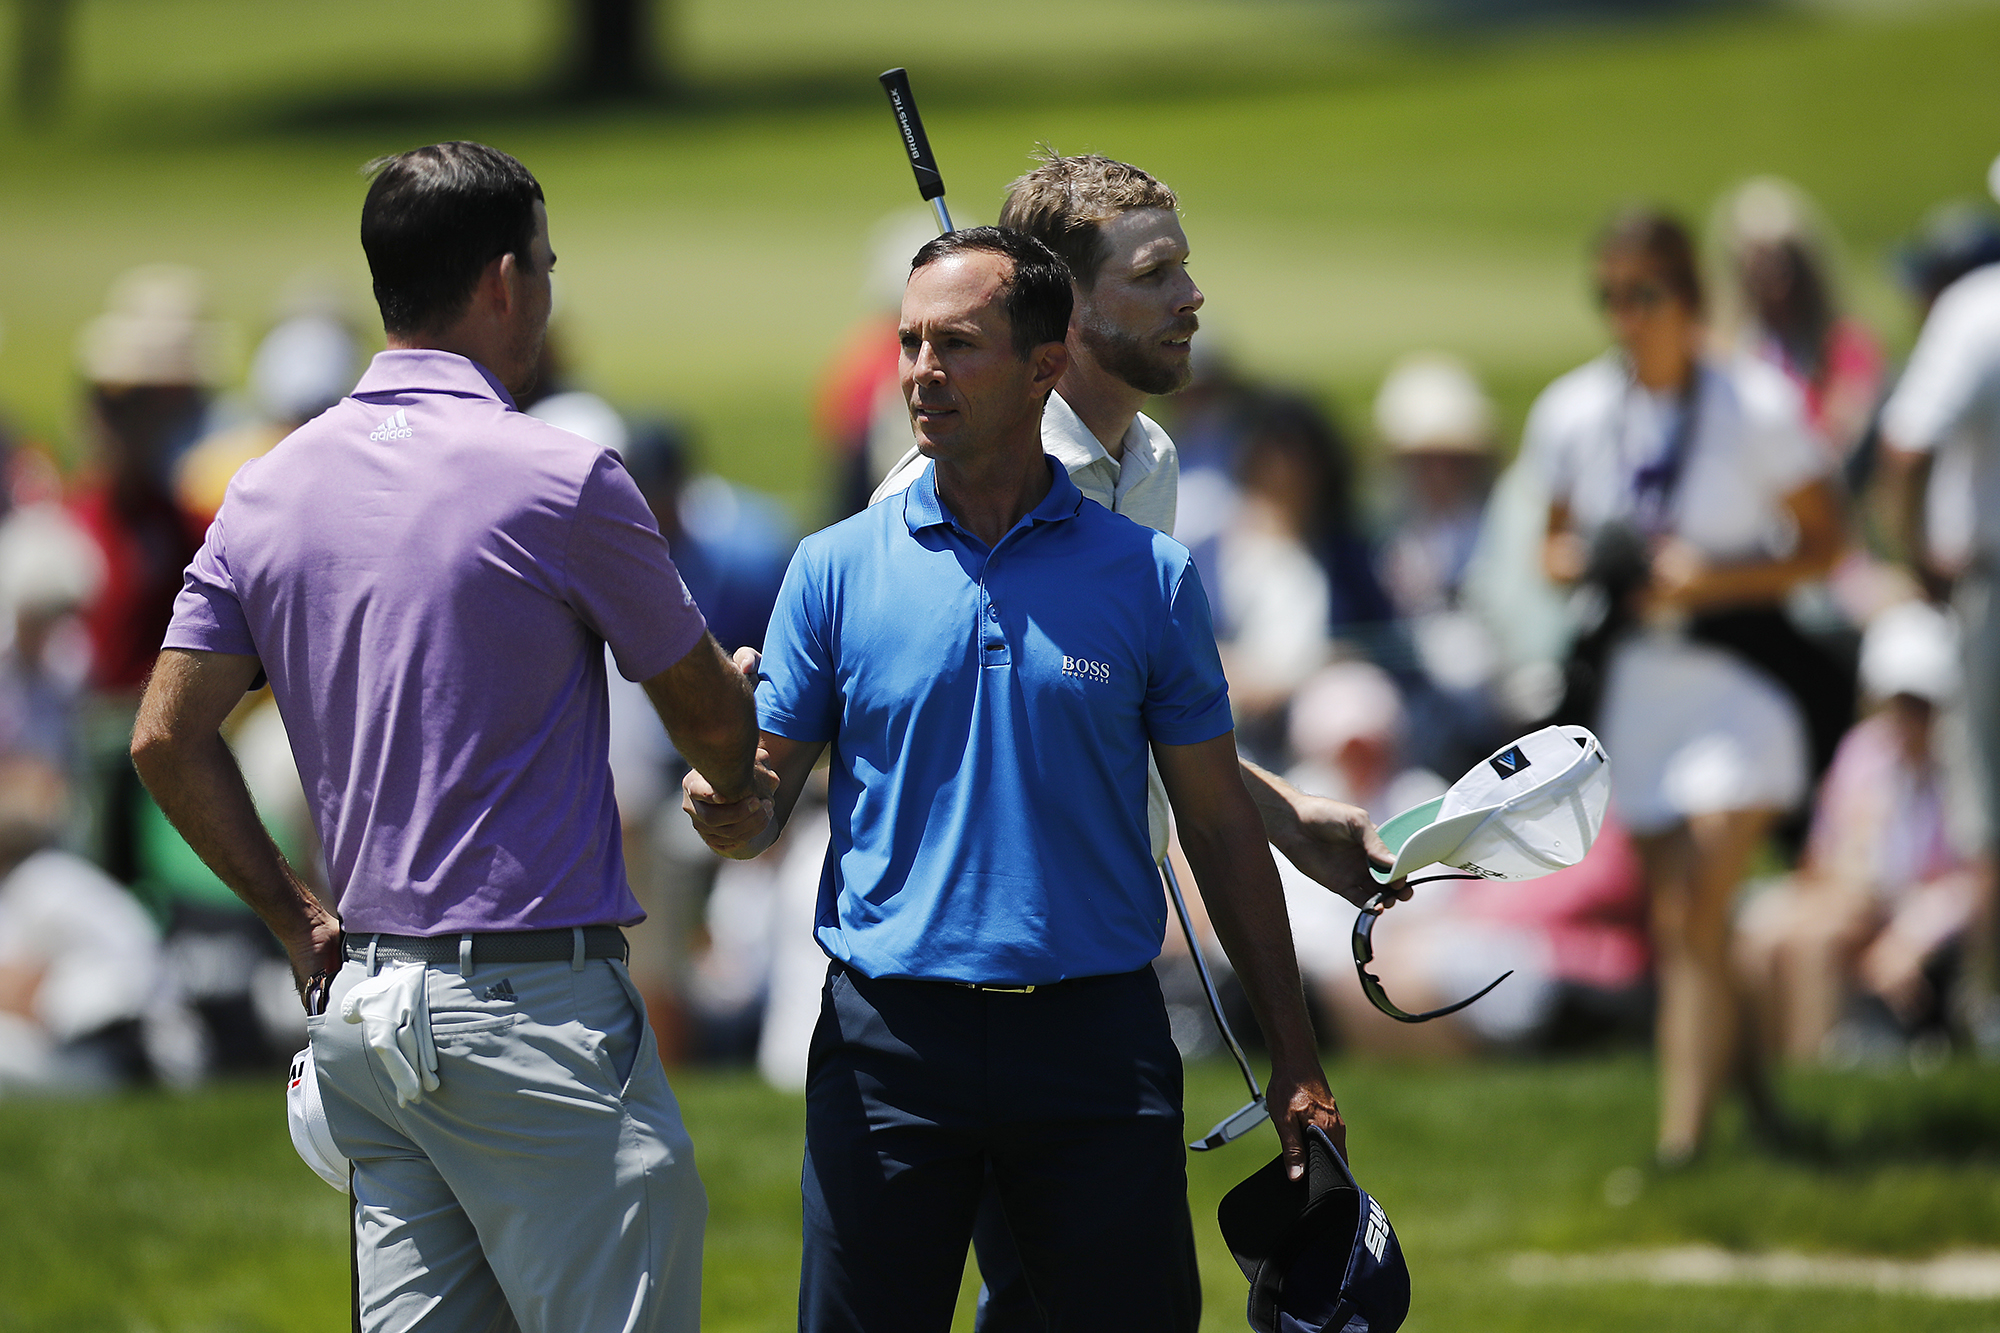 Mike Weir, Nick Taylor